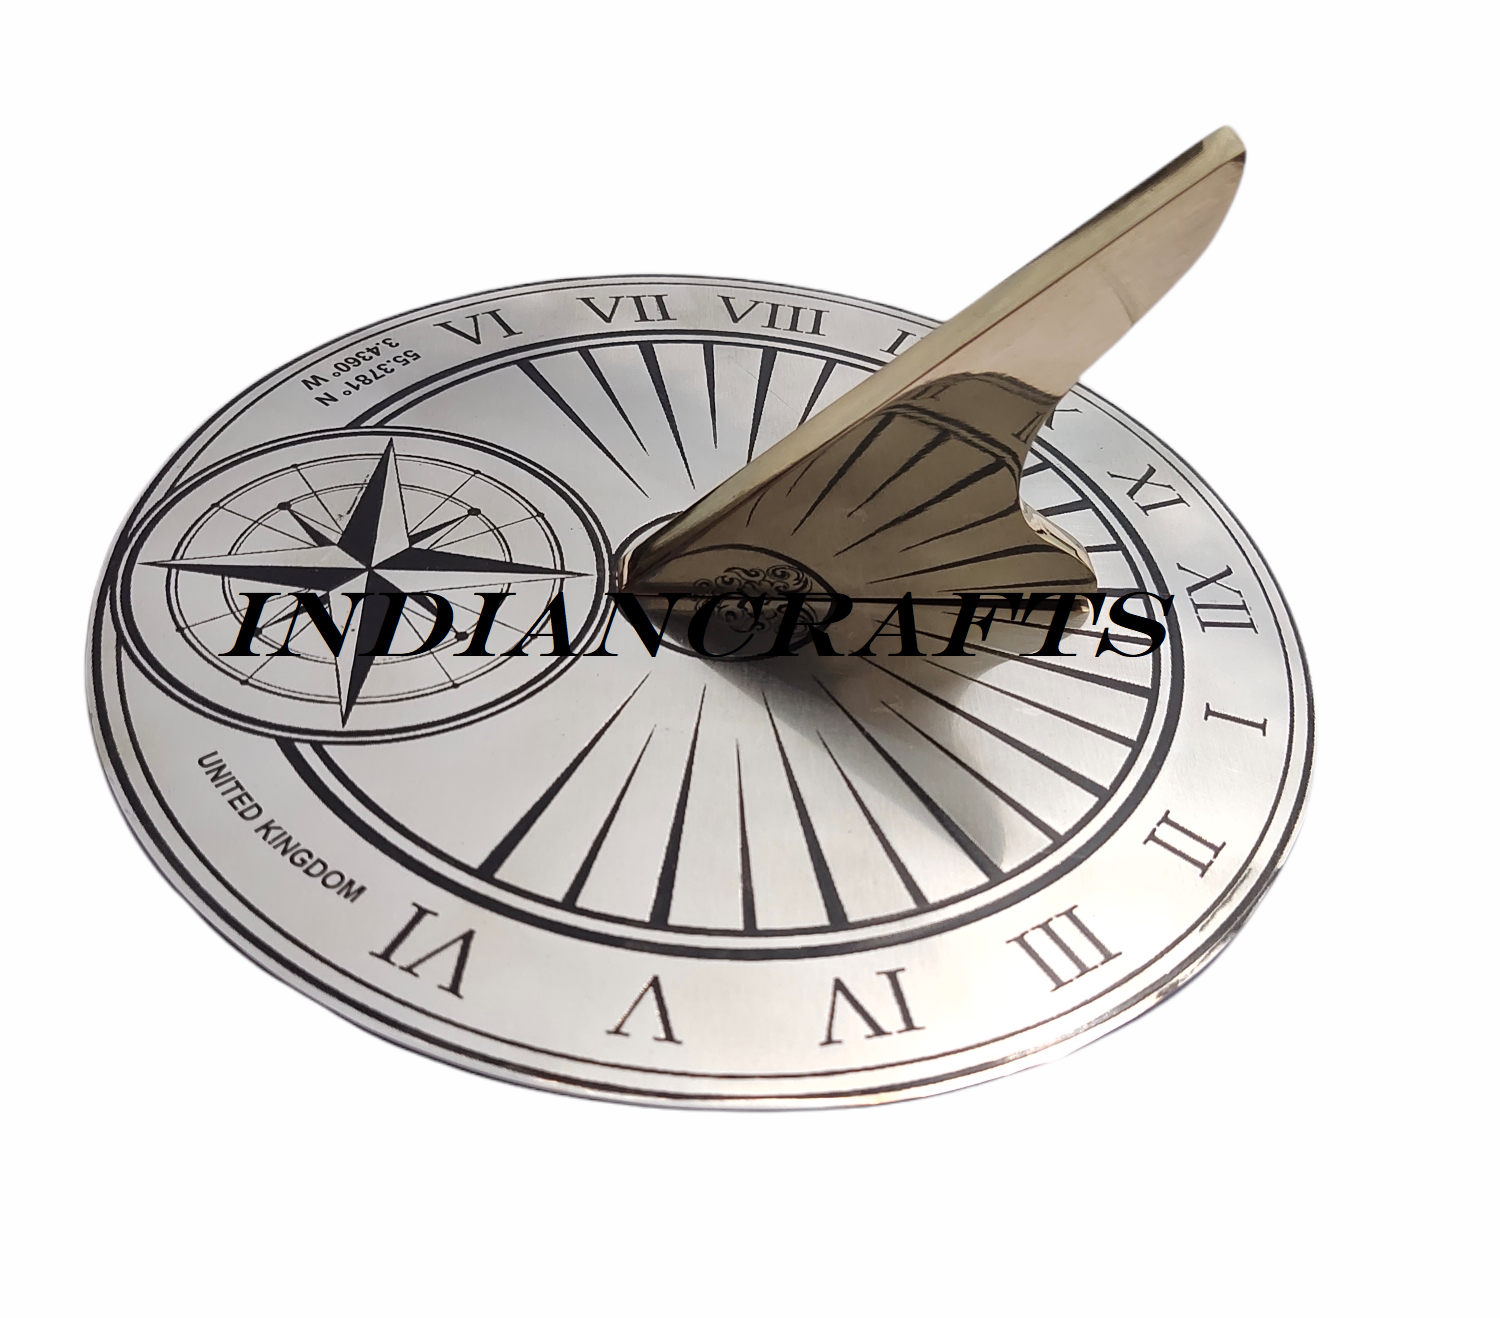 Garden Nautical Sundial 8 Inch Country Name & Coordinates Engraved Best Gift